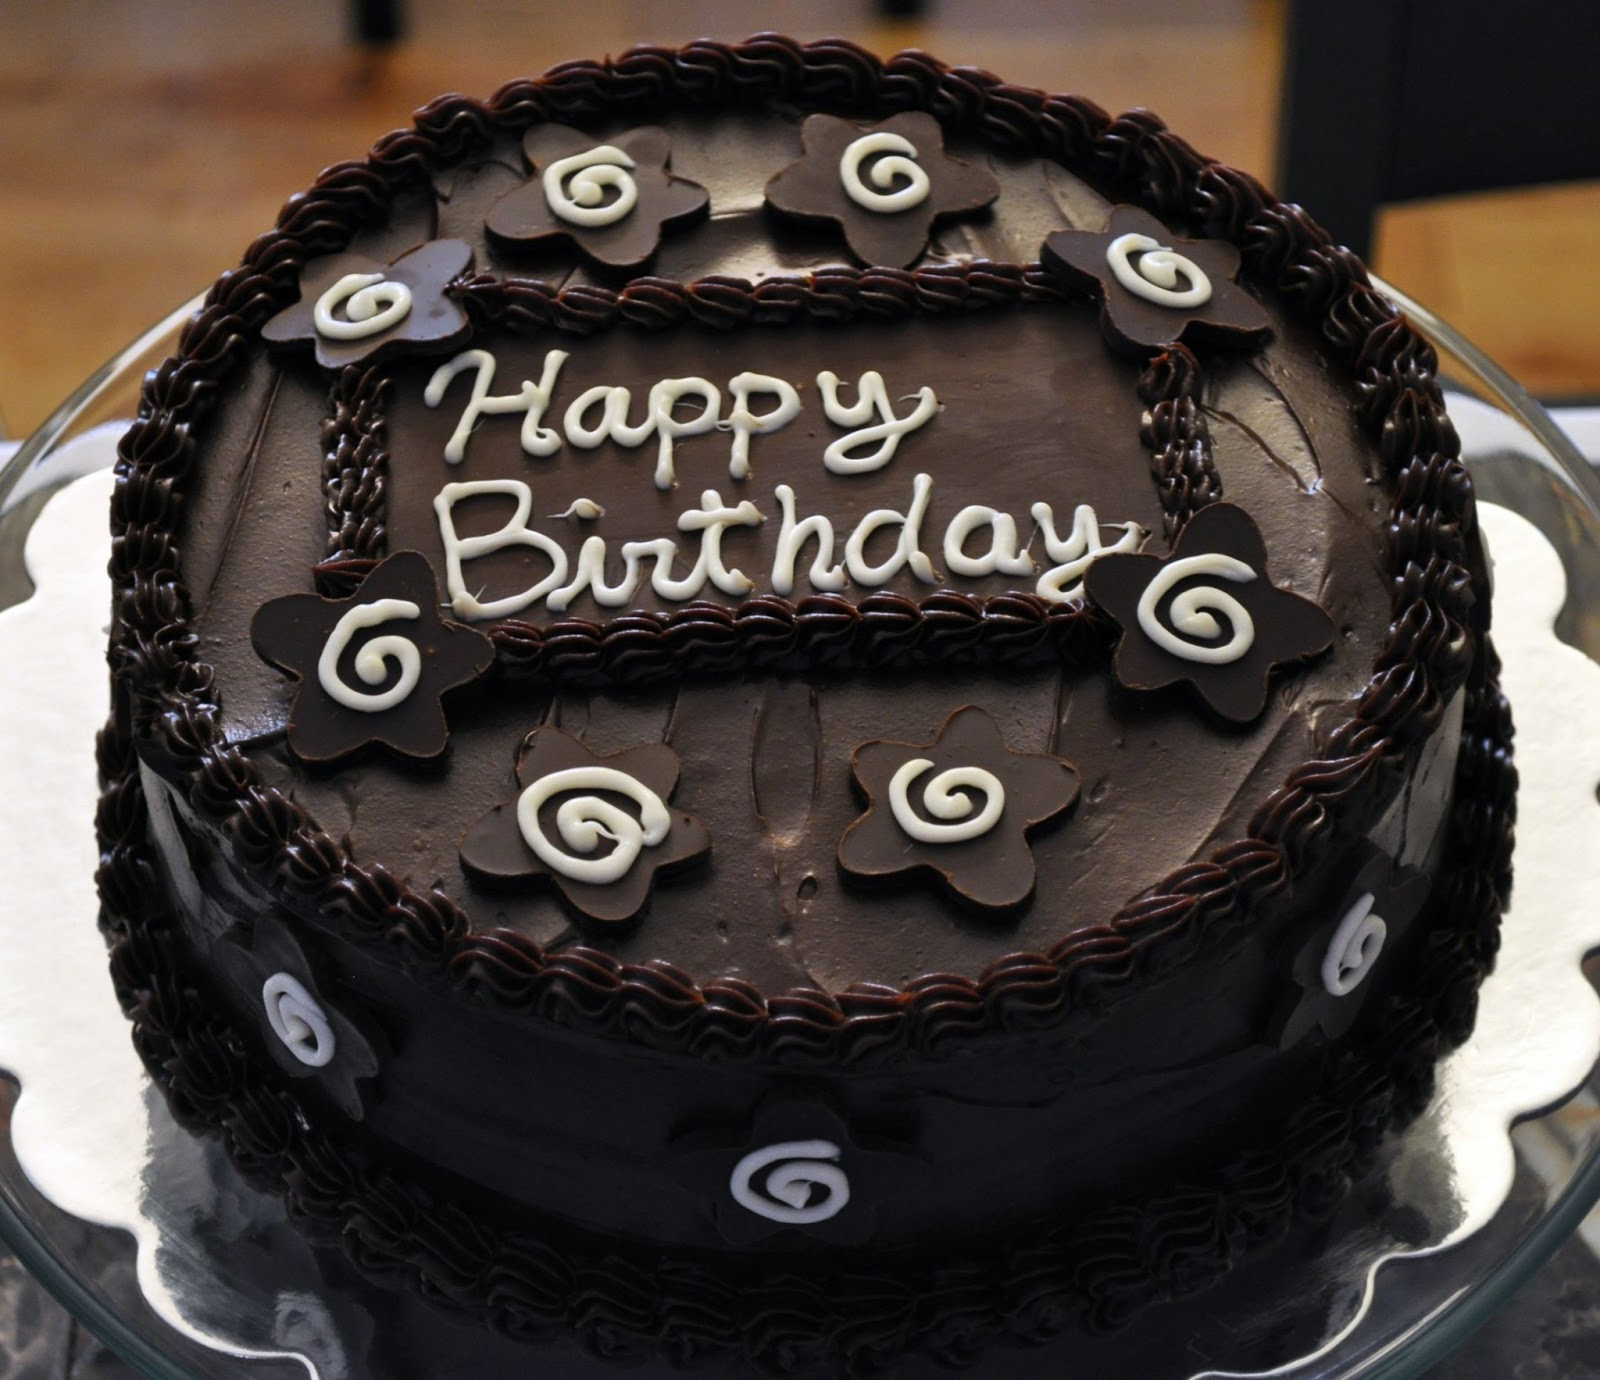 Best ideas about Cake Happy Birthday . Save or Pin Happy Birthday s & Birthday Cakes Now.